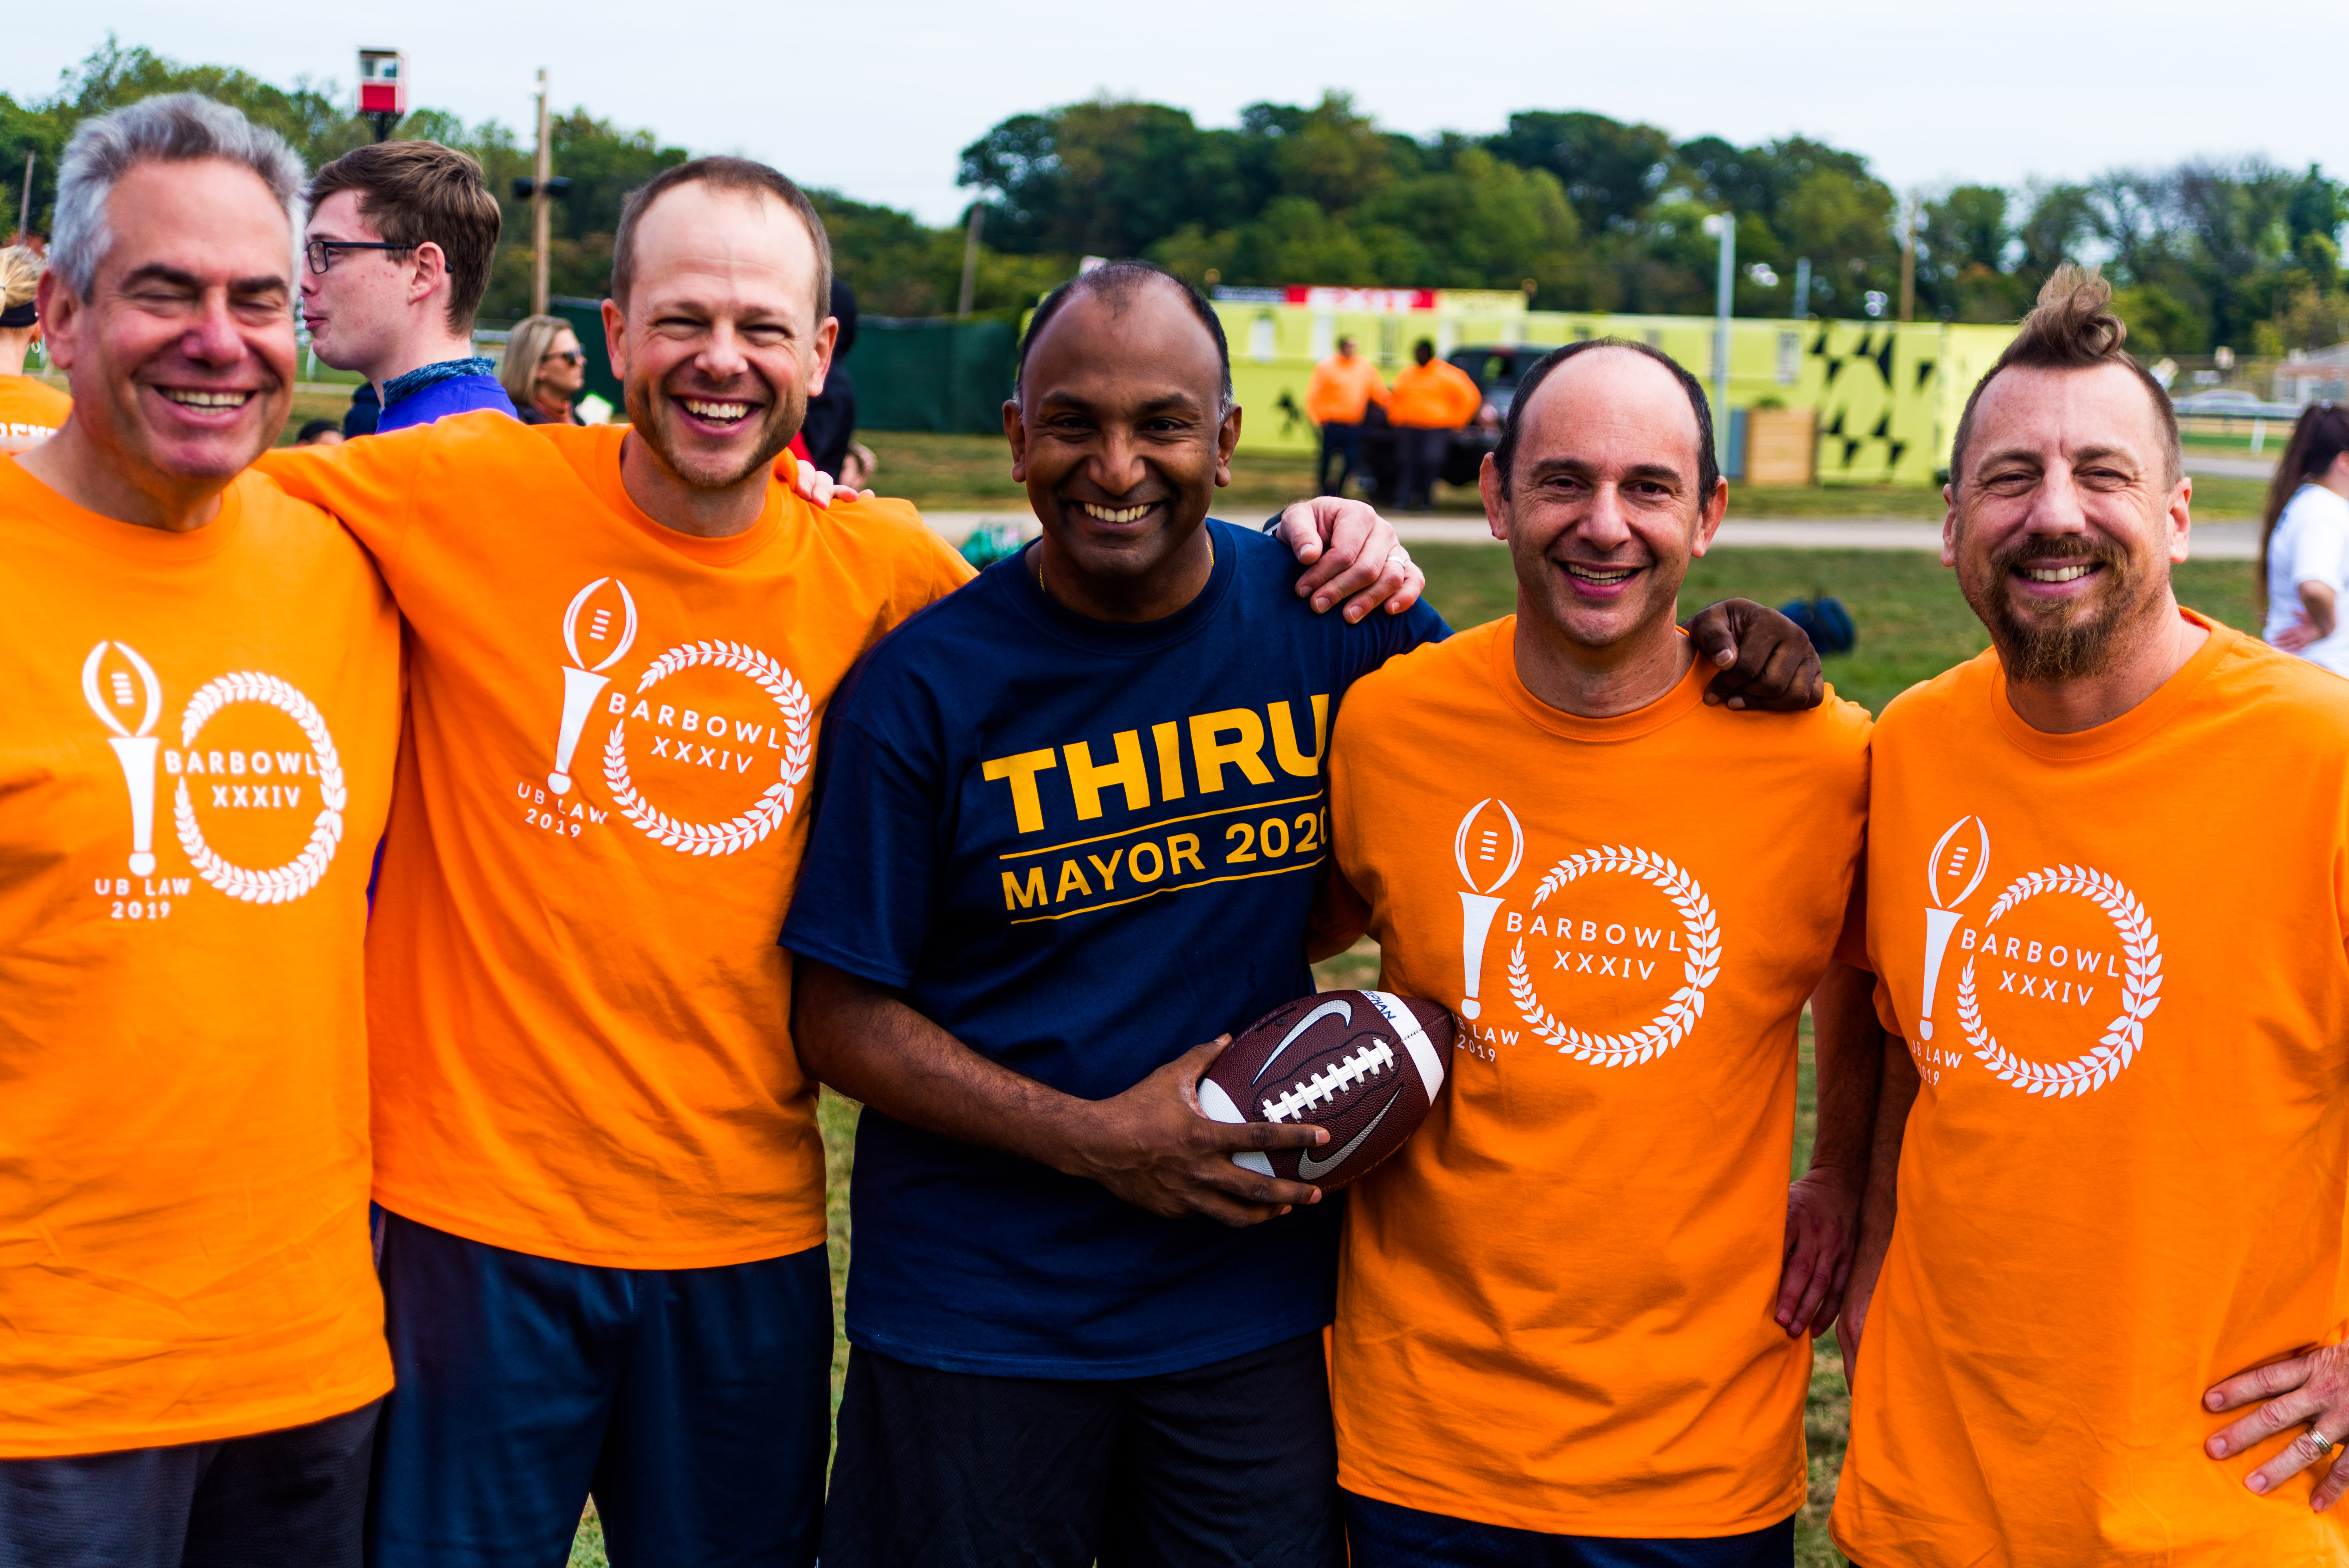 Thiru Vignarajah poses with other members of the UB Law faculty and alumni team at their 34th annual Bar Bowl flag football tournament